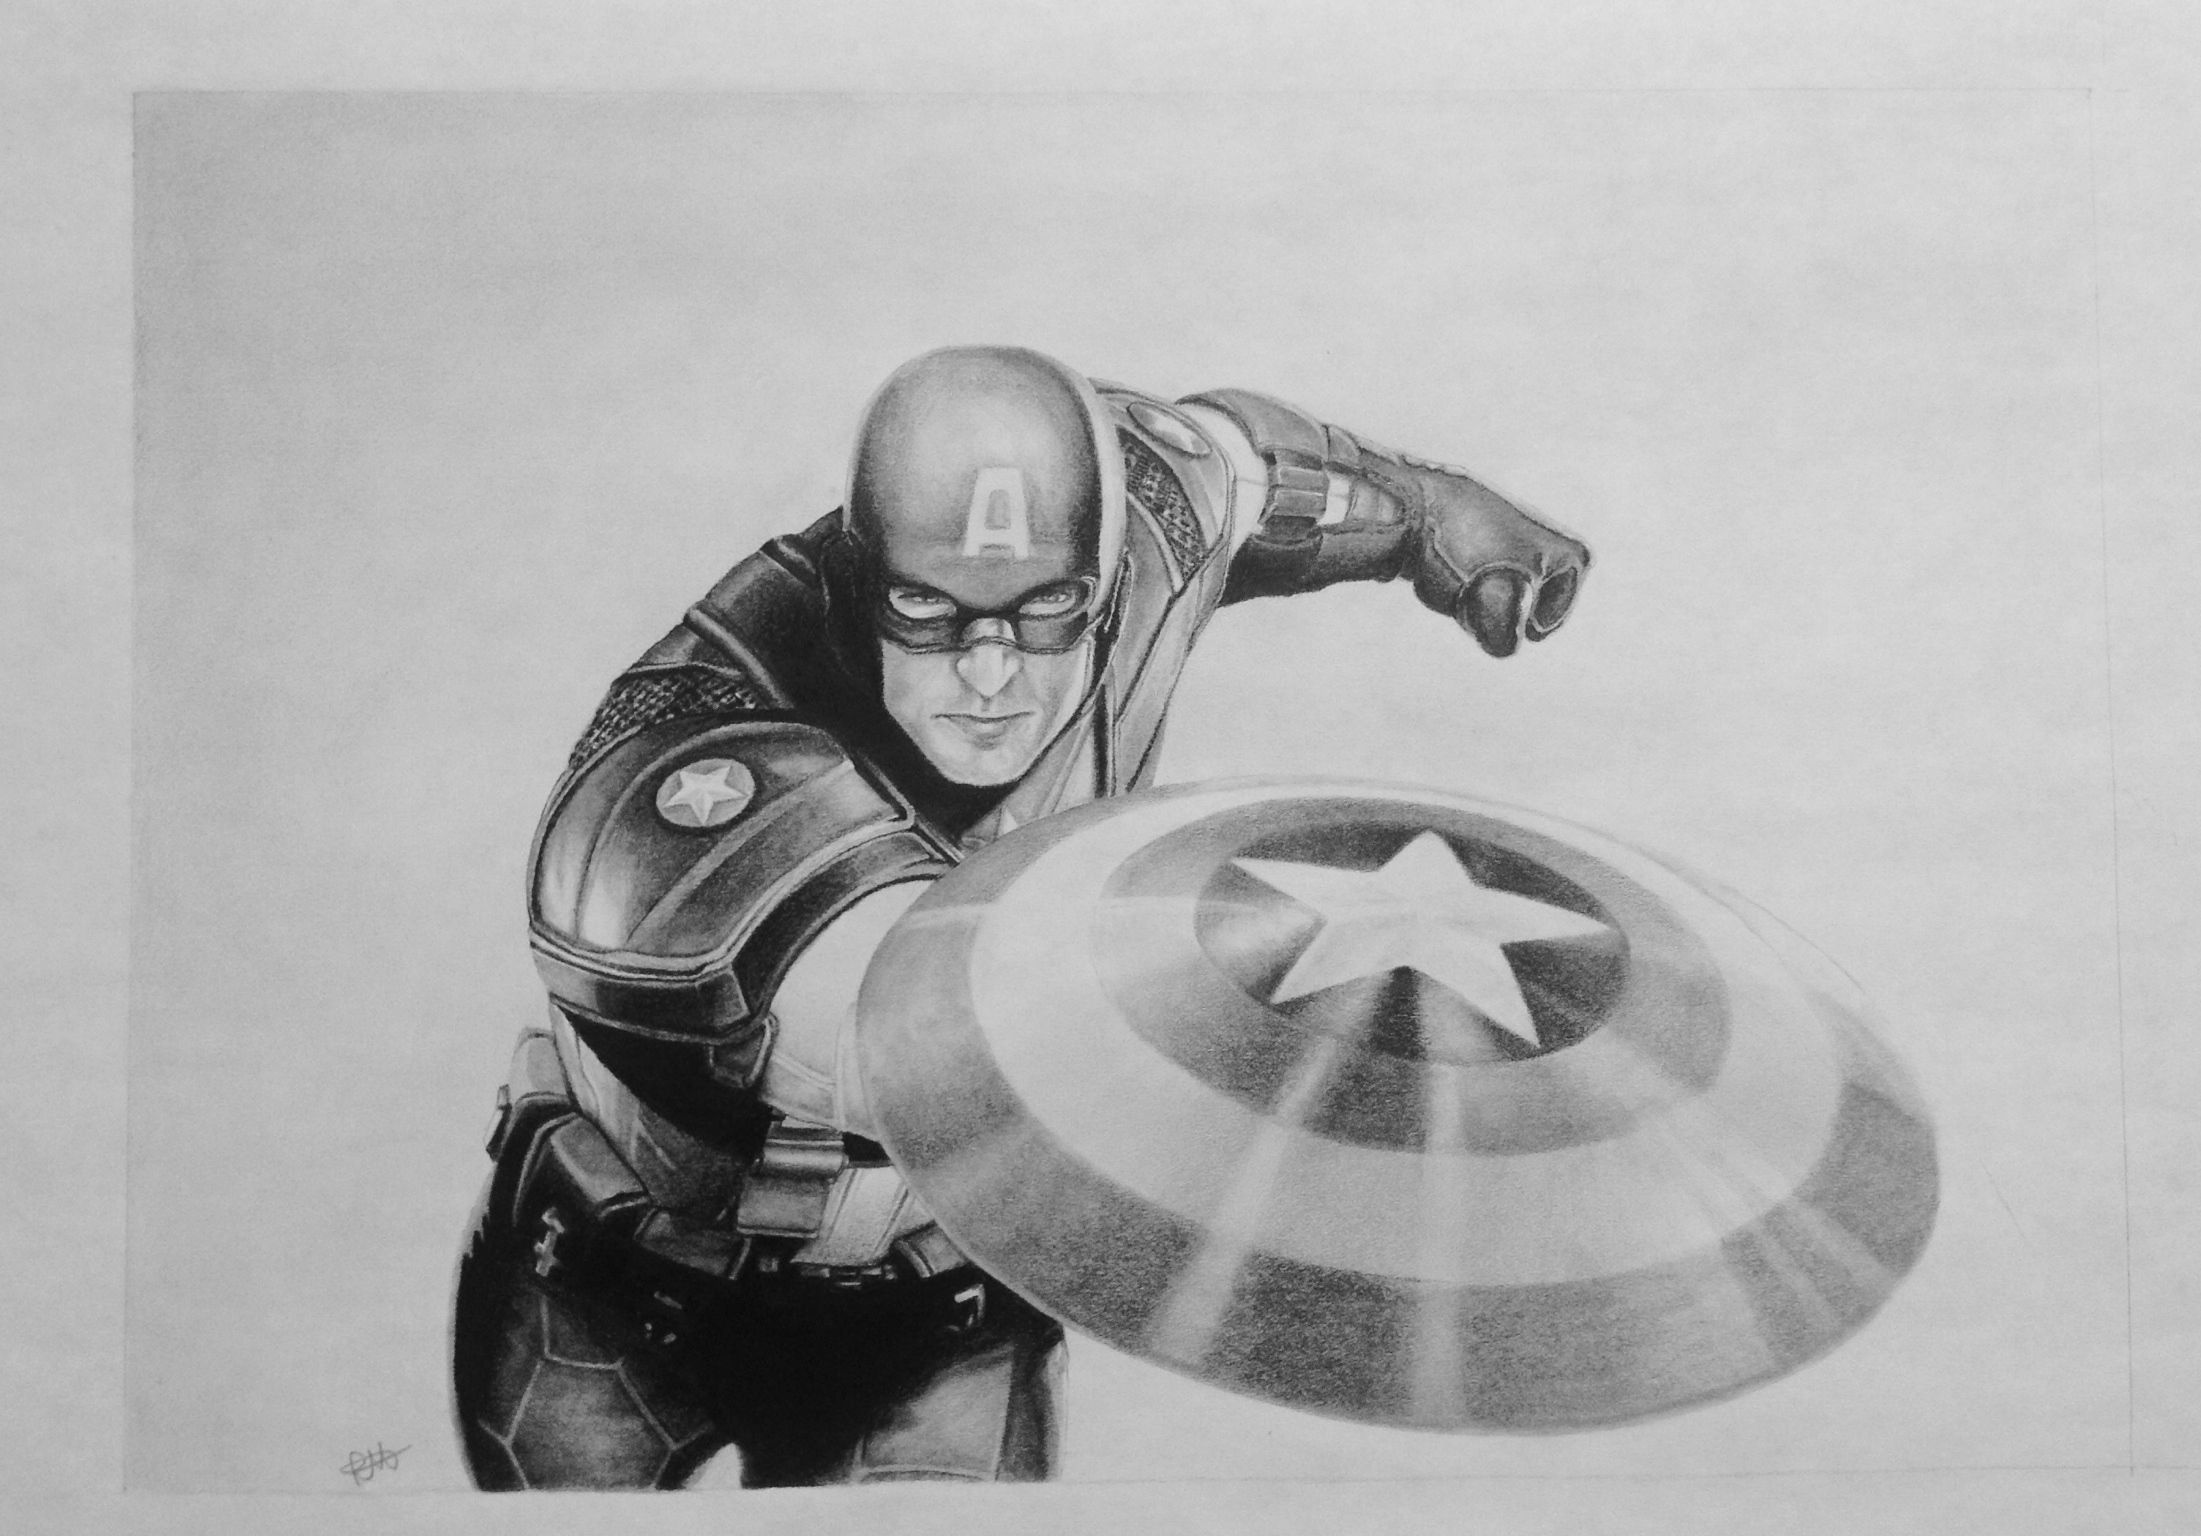 captain america drawing my drawing of captain america marvel drawing captain america